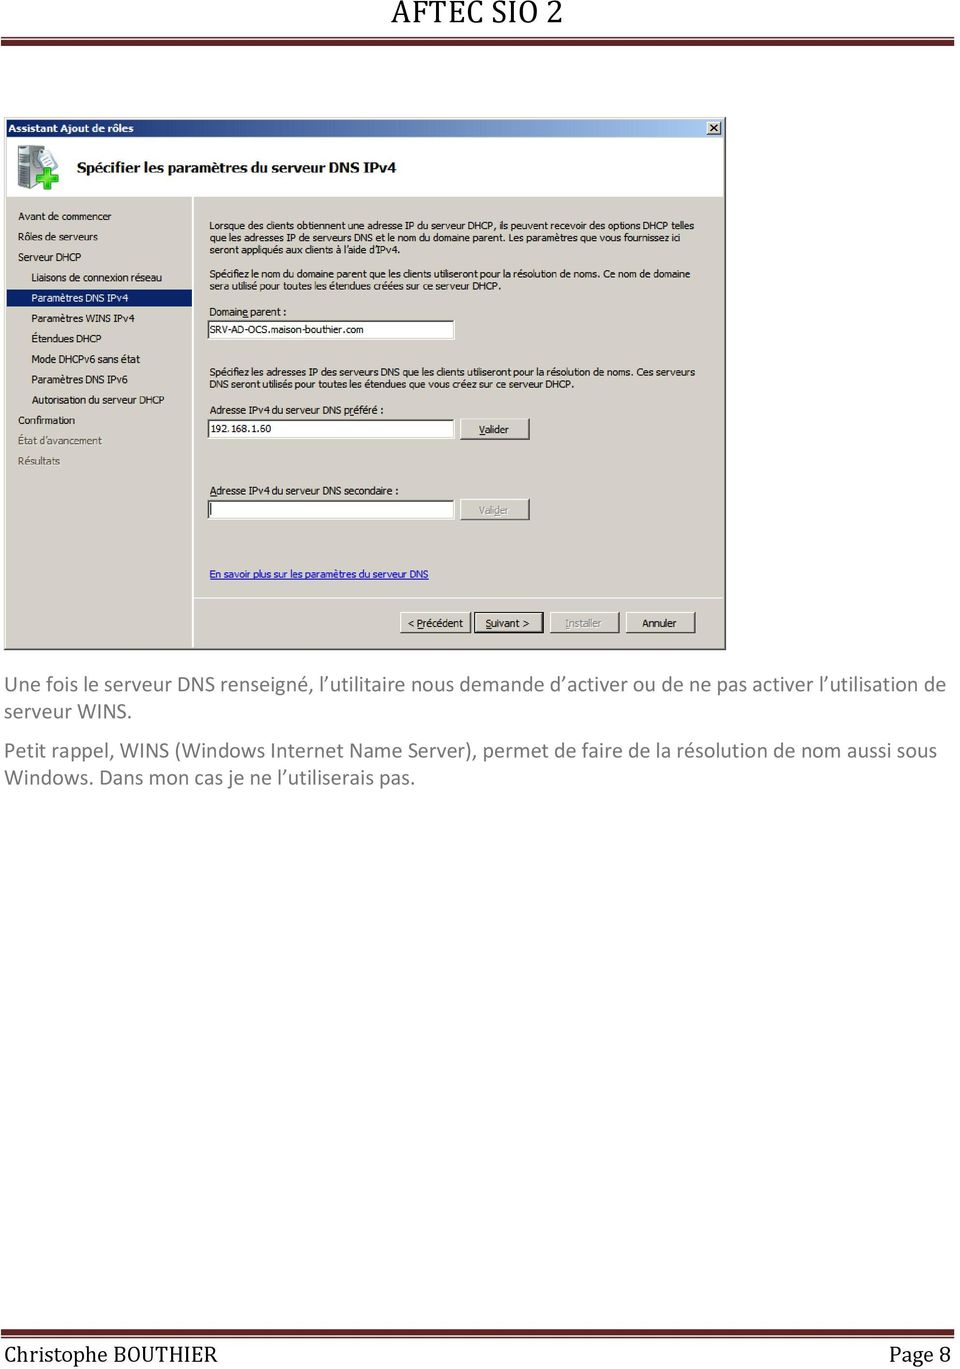 Petit rappel, WINS (Windows Internet Name Server), permet de faire de la